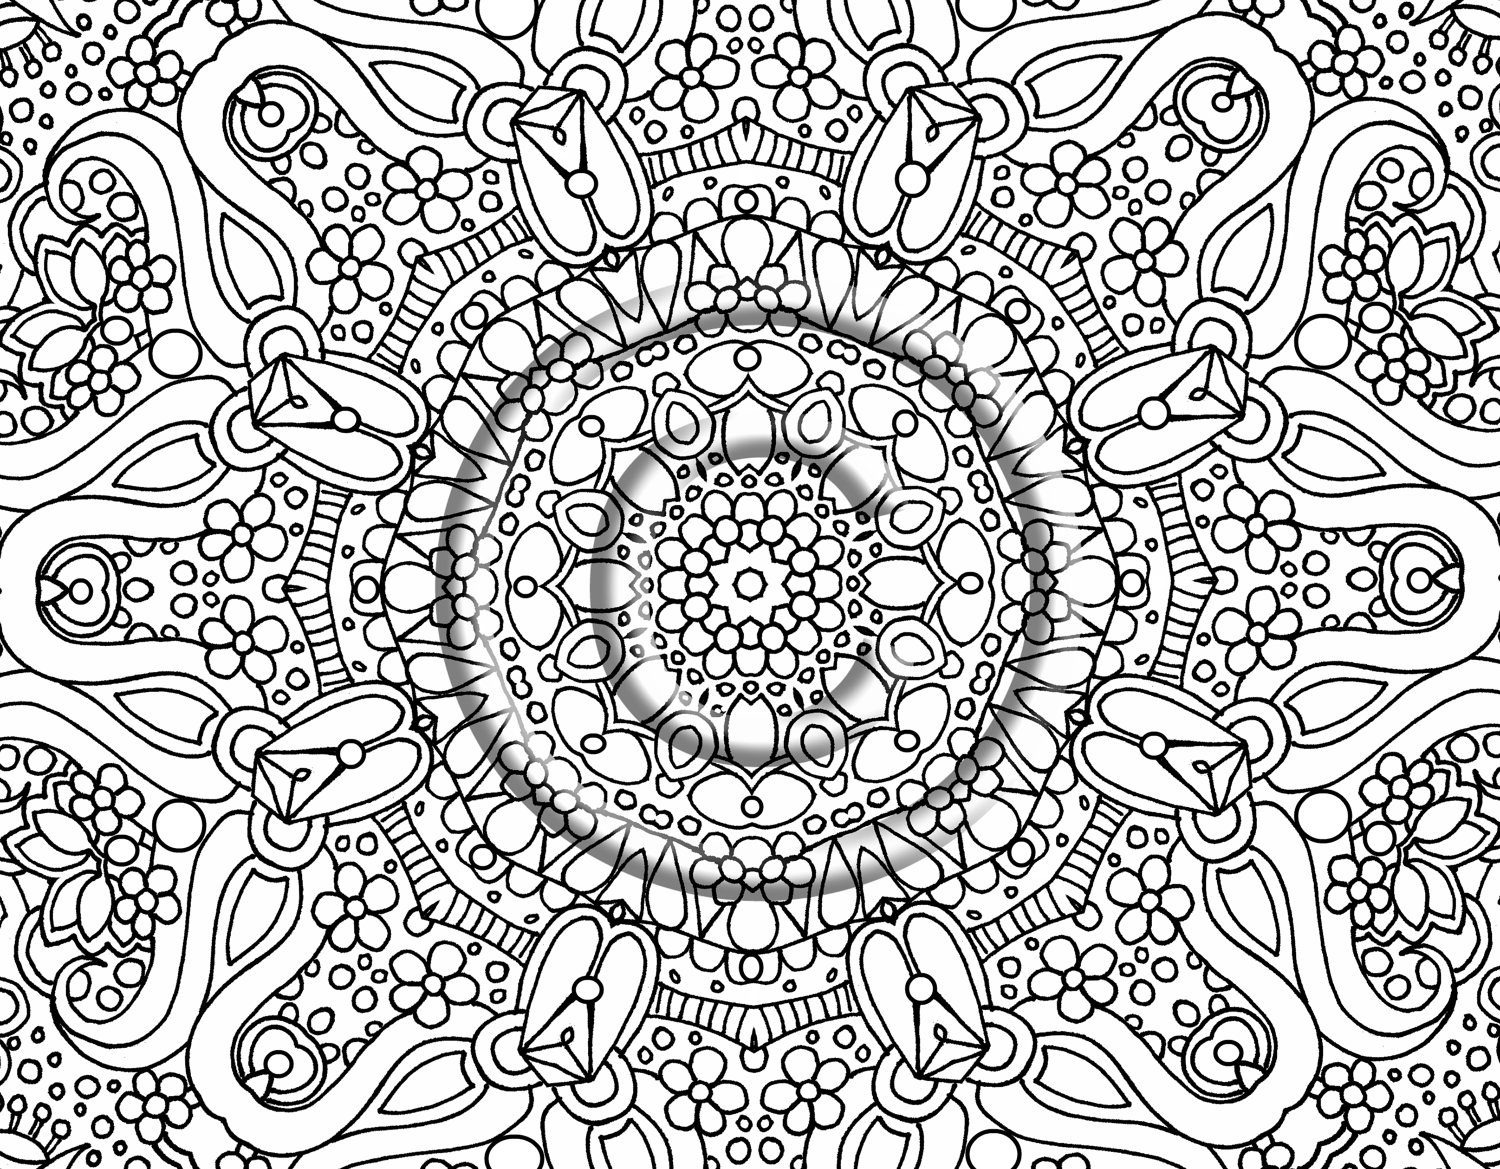 abstract flower coloring pages treehutin pages flower coloring abstract